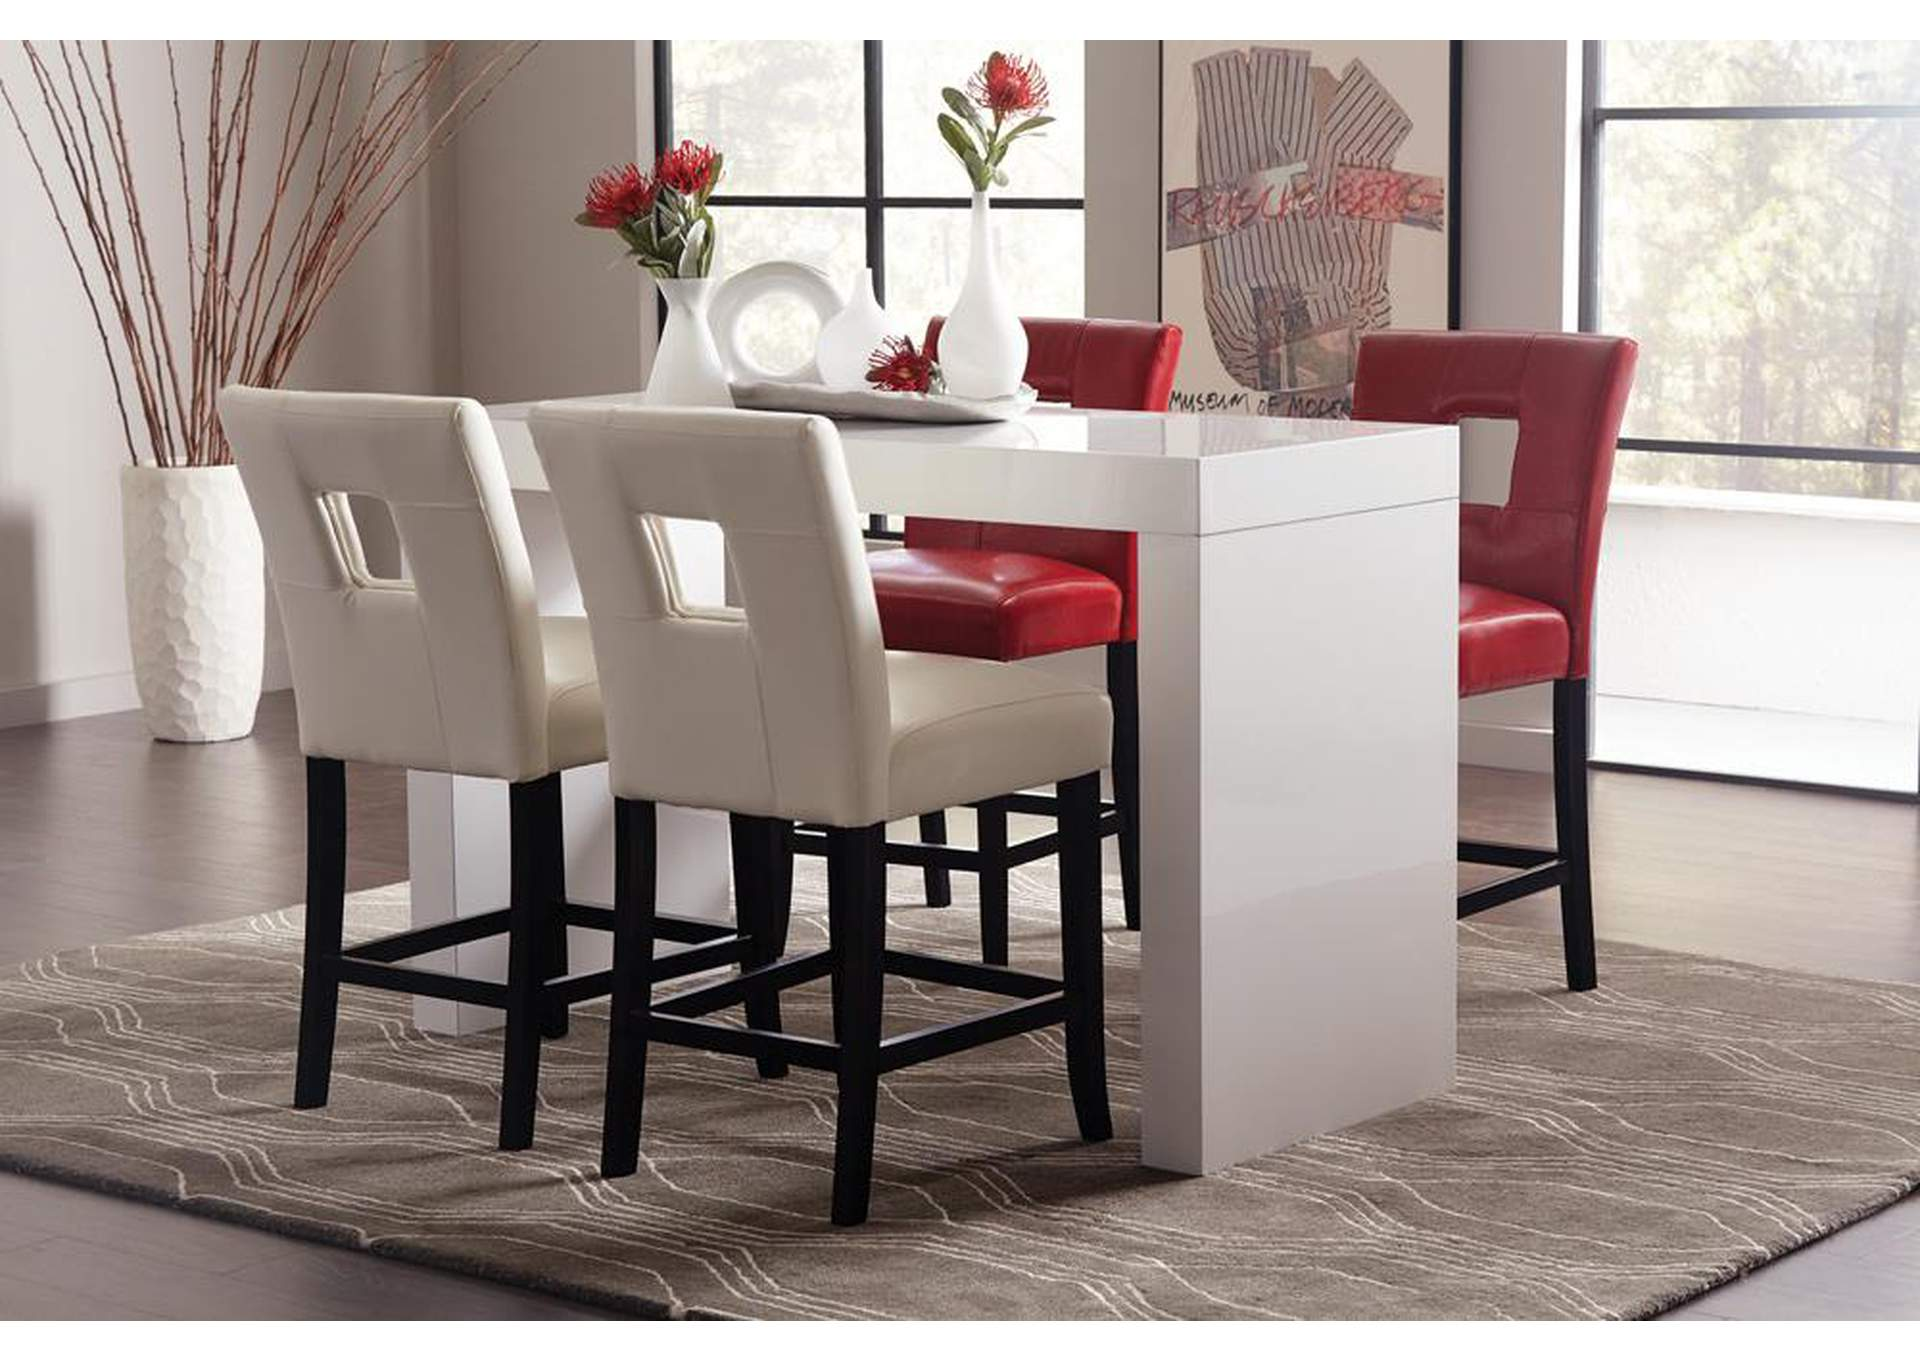 Mercury Counter Height Table,Coaster Furniture